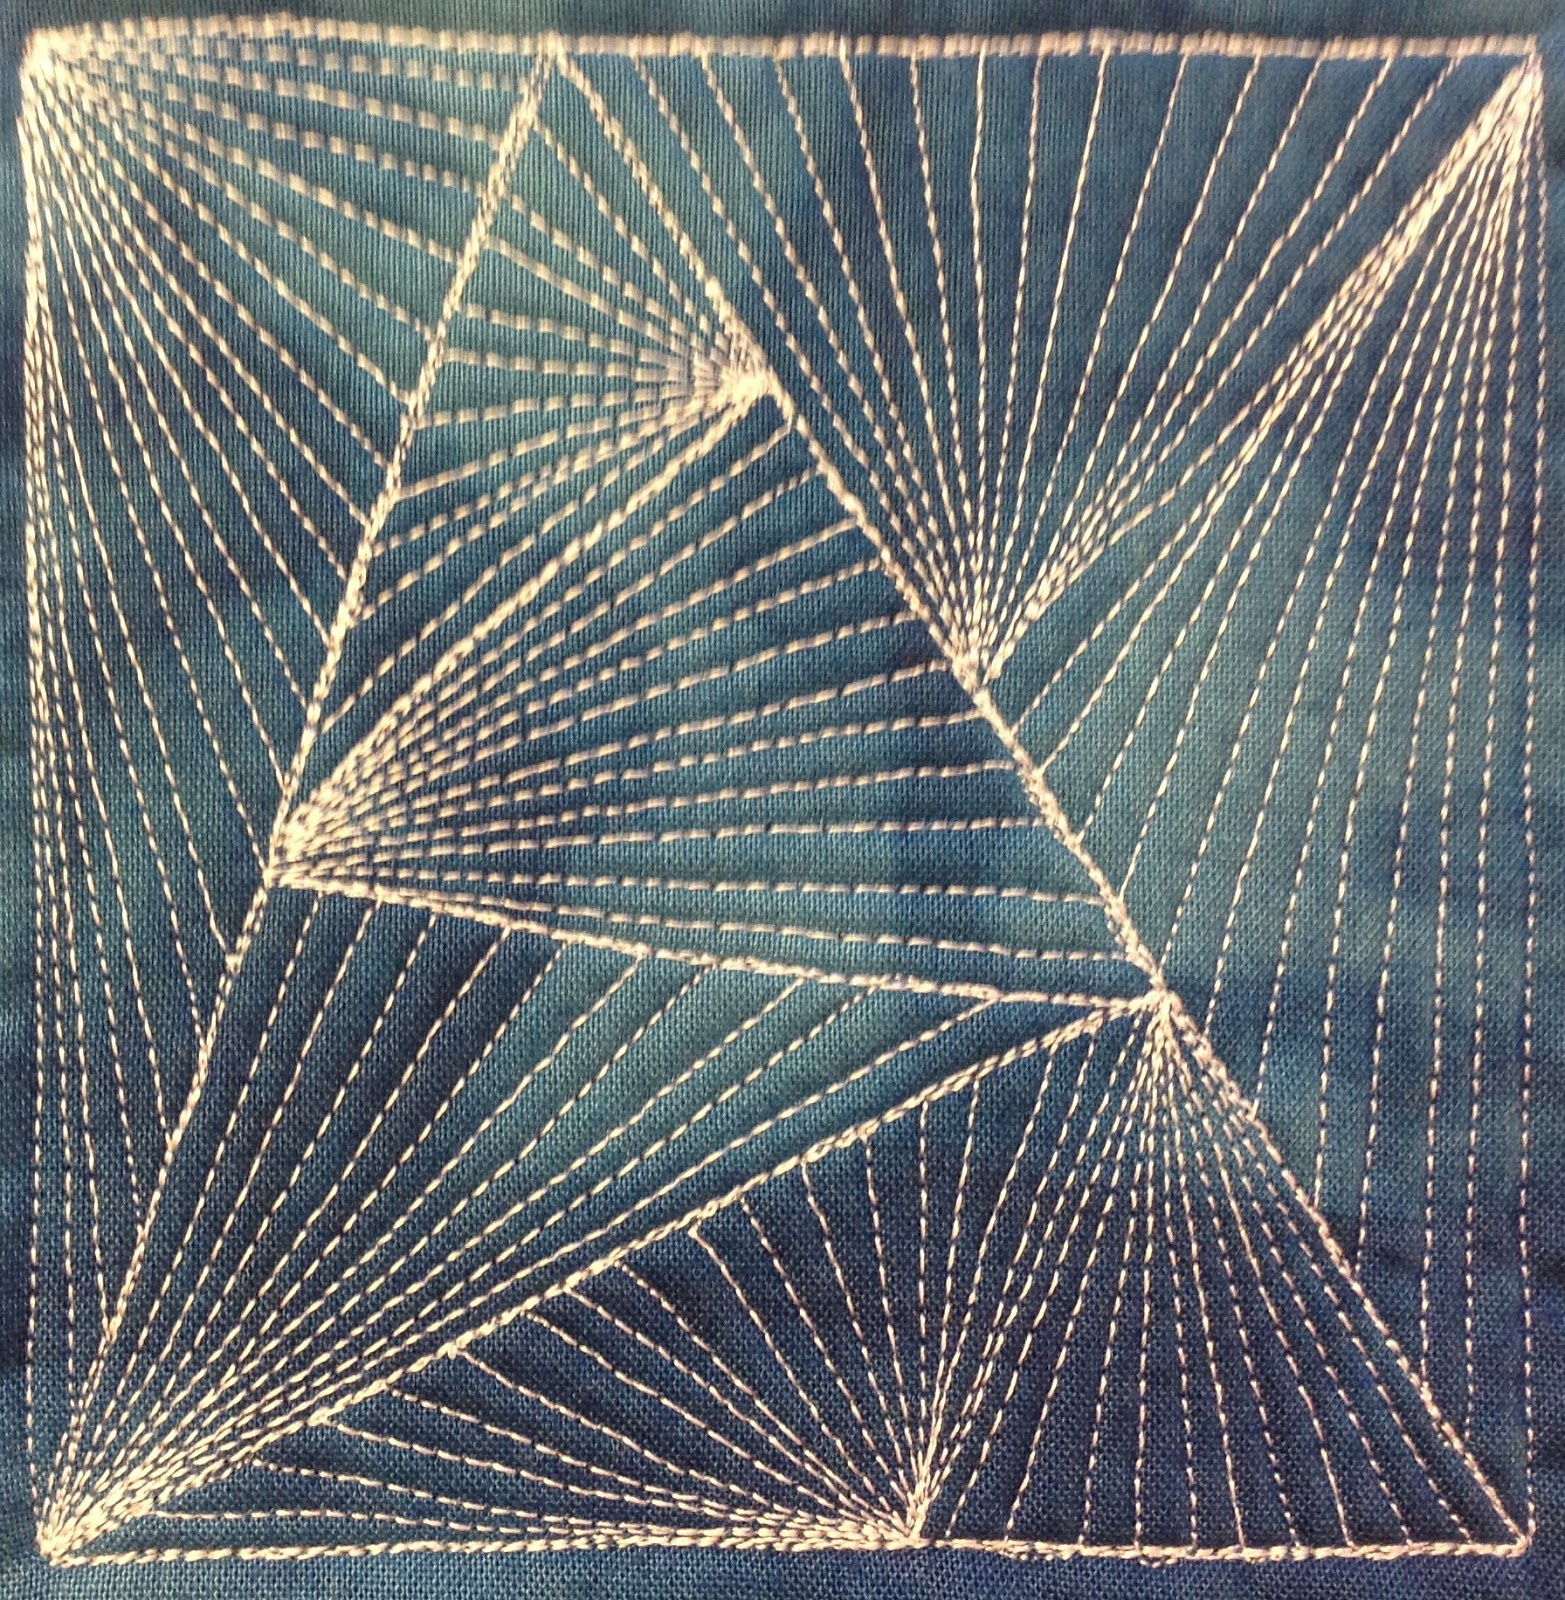 Modern Free Motion Quilting Patterns : The Free Motion Quilting Project: 75. Free Motion Quilting Modern Weave, #417